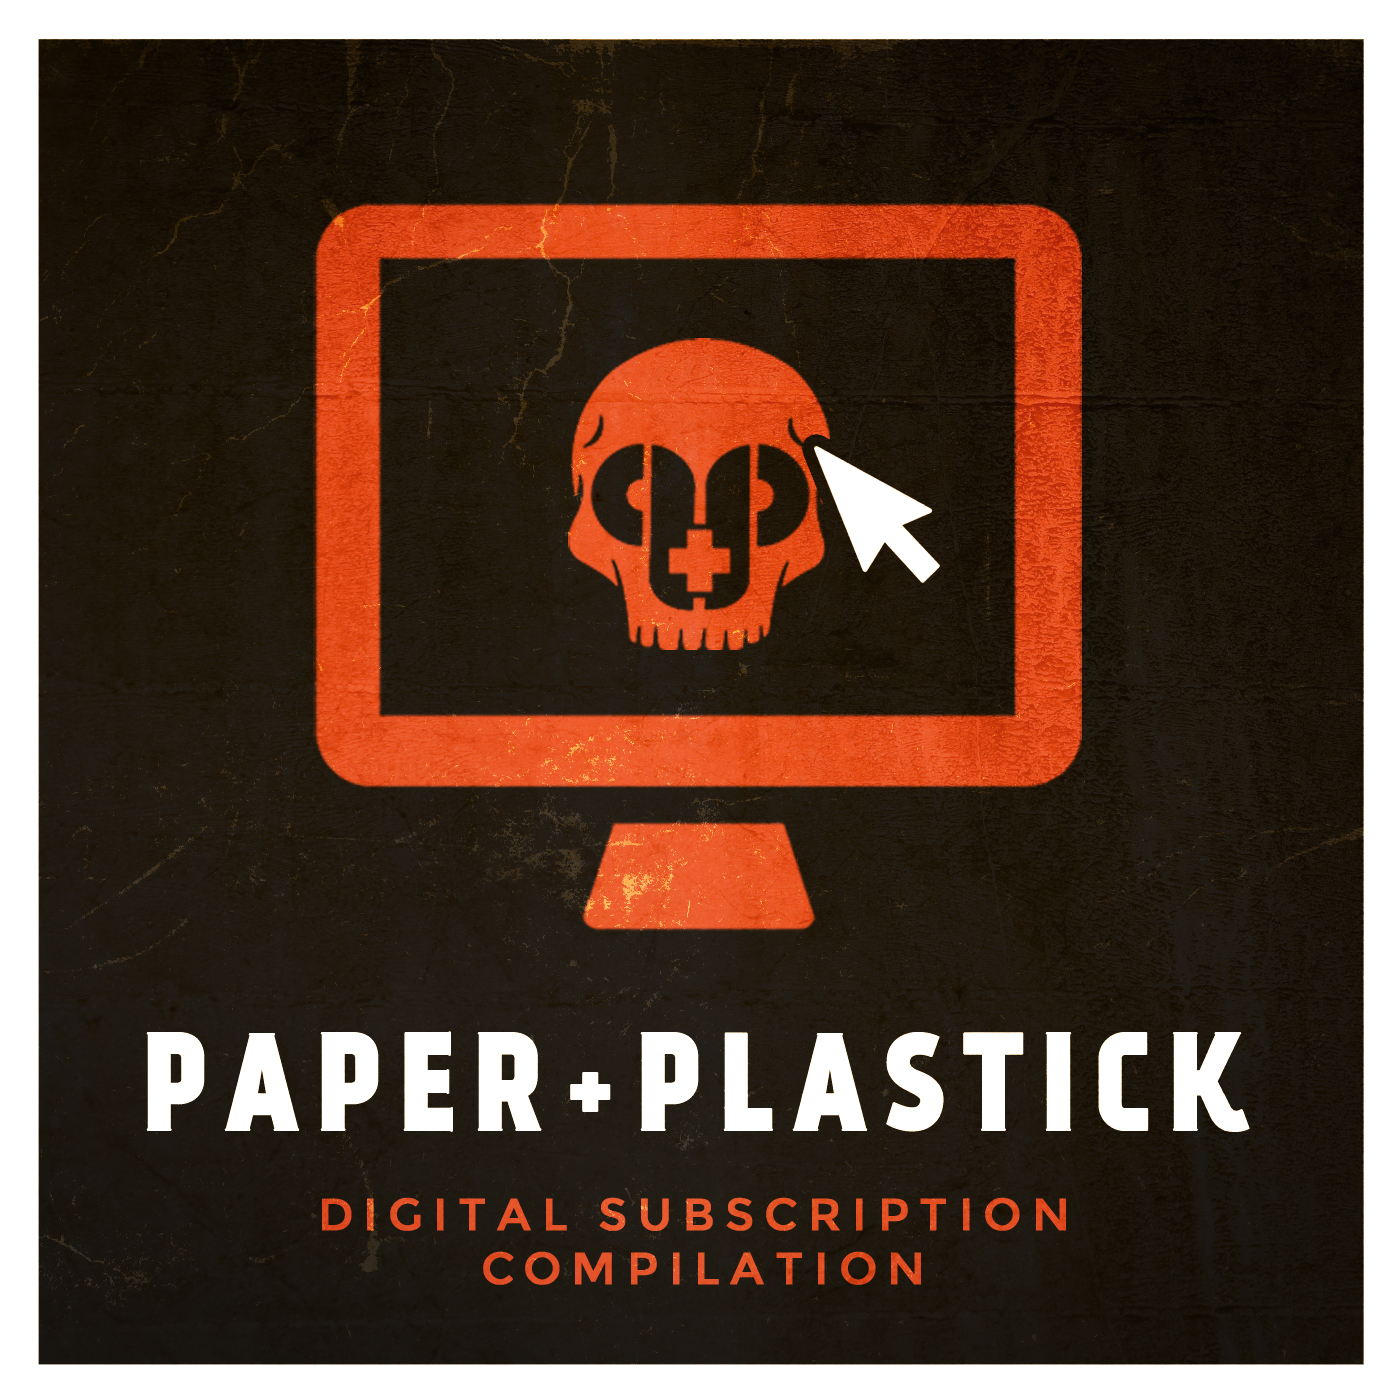 Paper + Plastick Digital Subscription Compilation